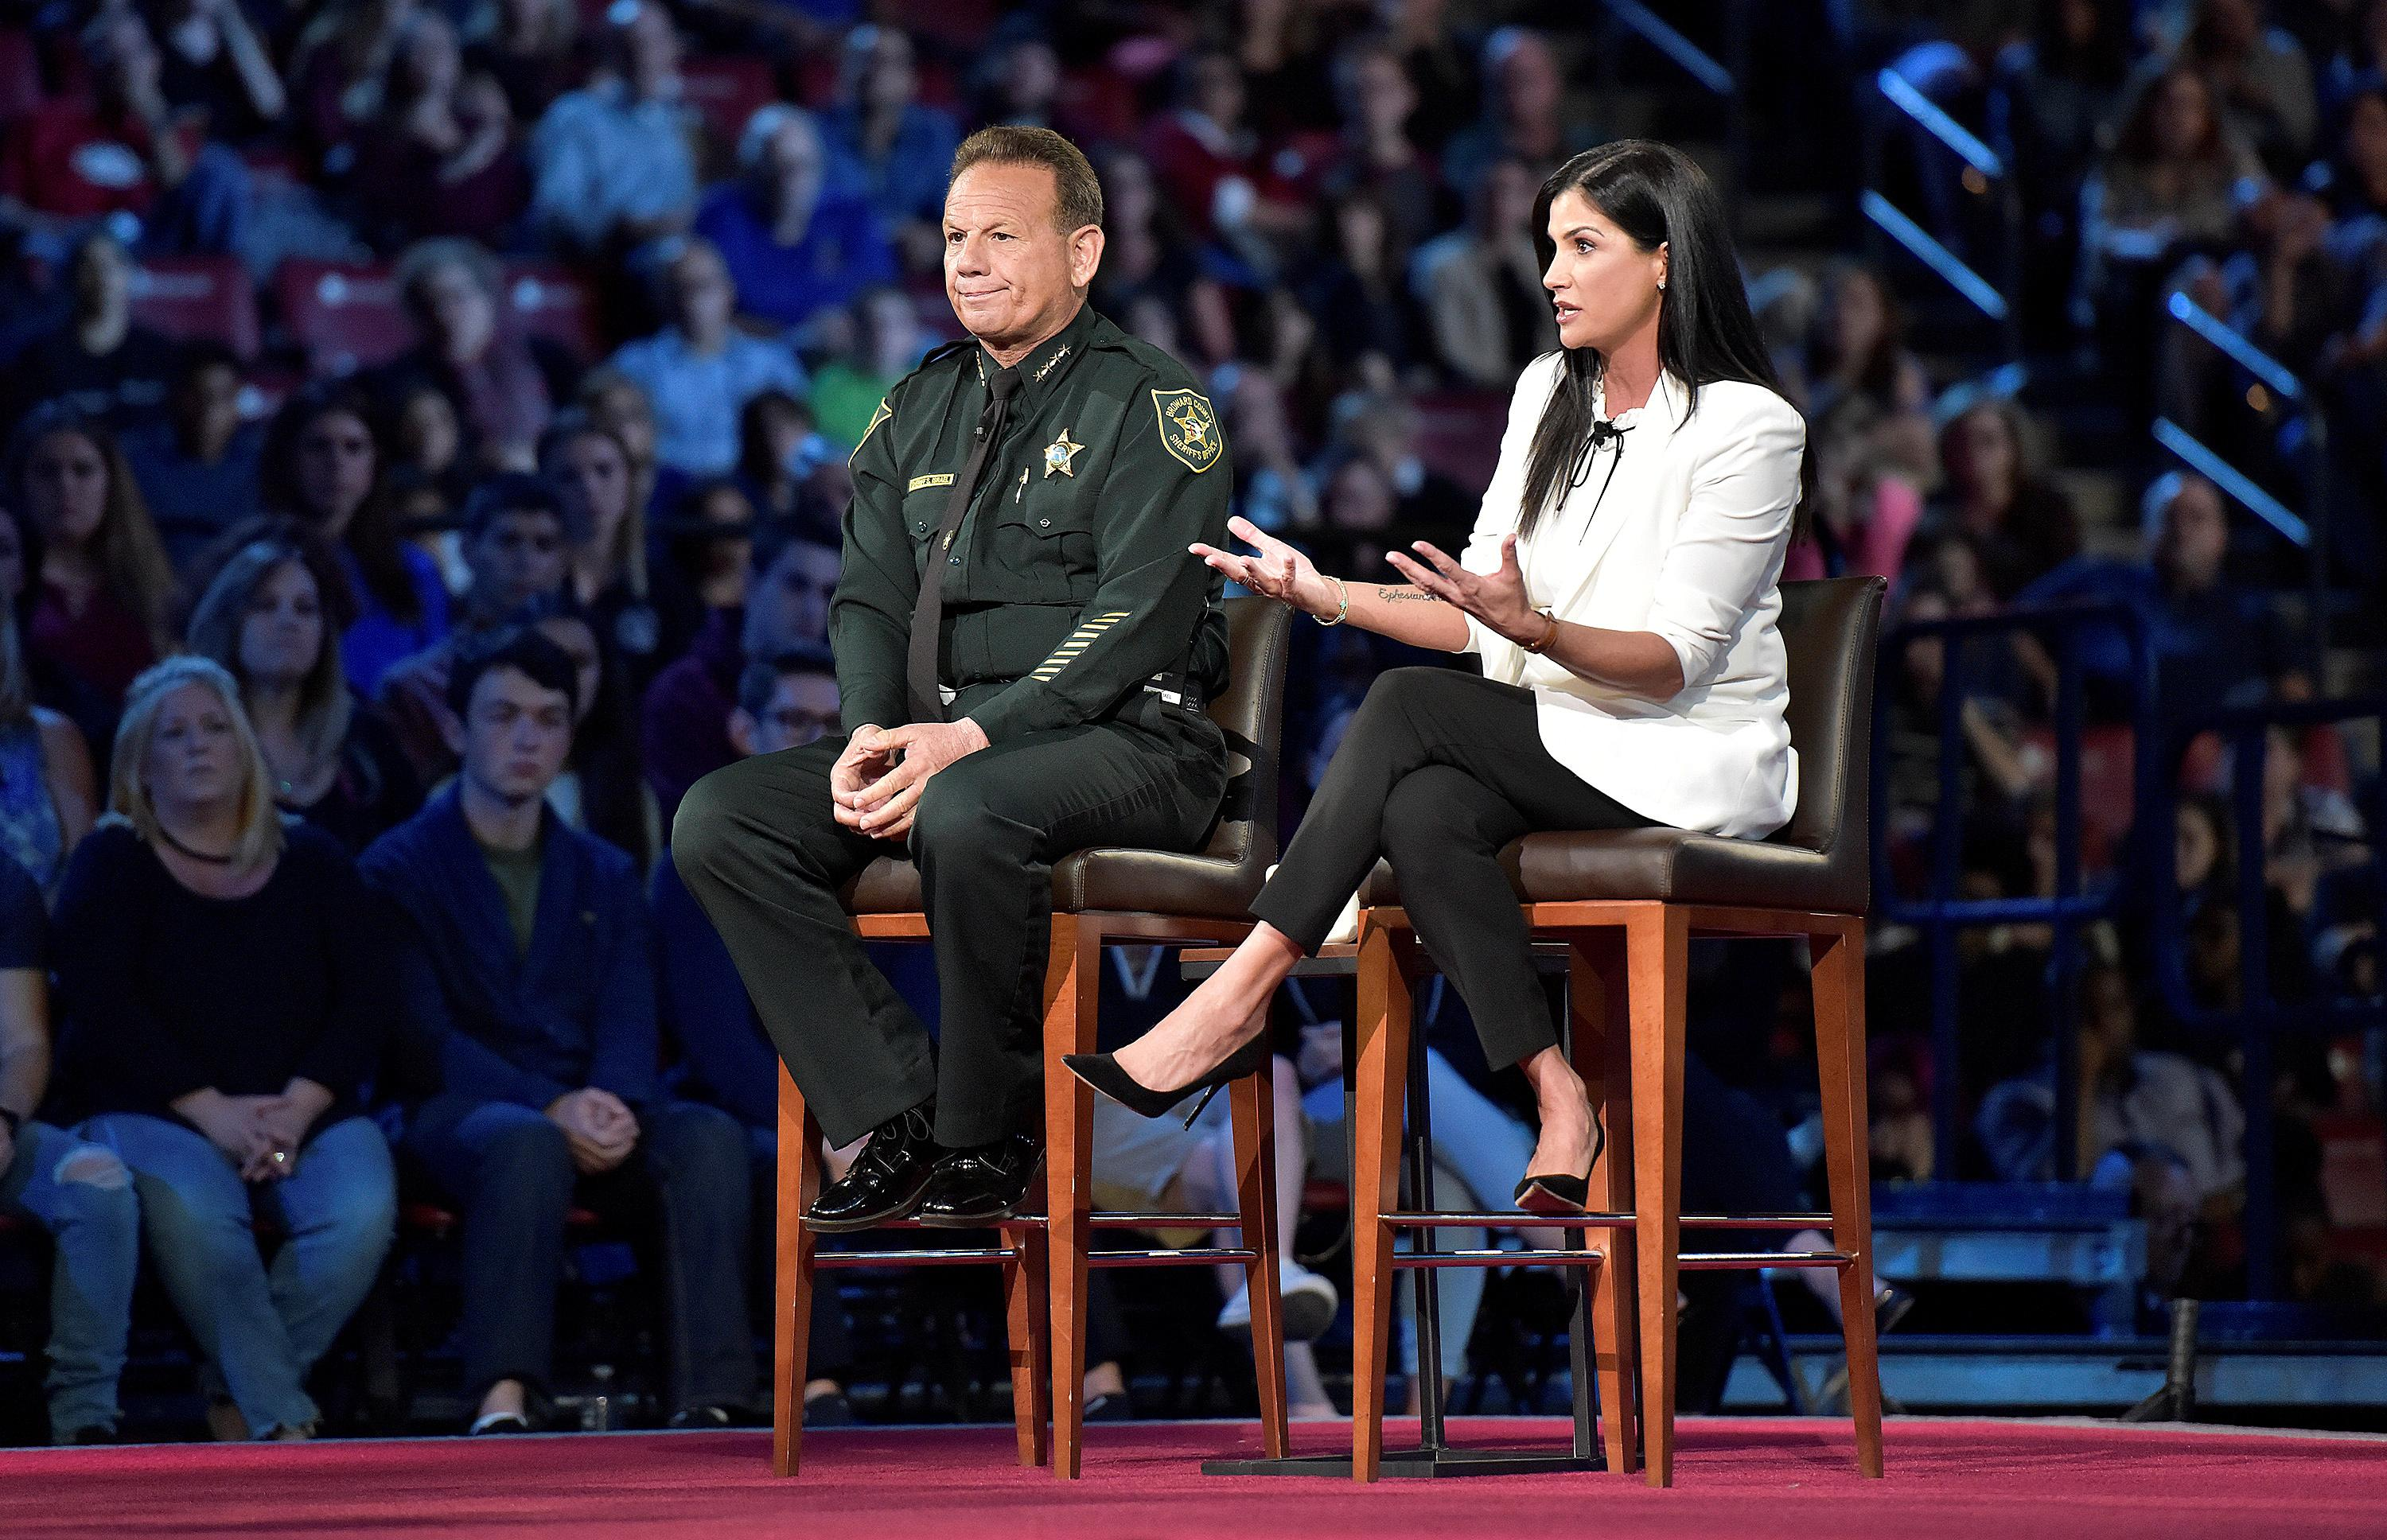 NRA's Wayne LaPierre delivers remarks at CPAC